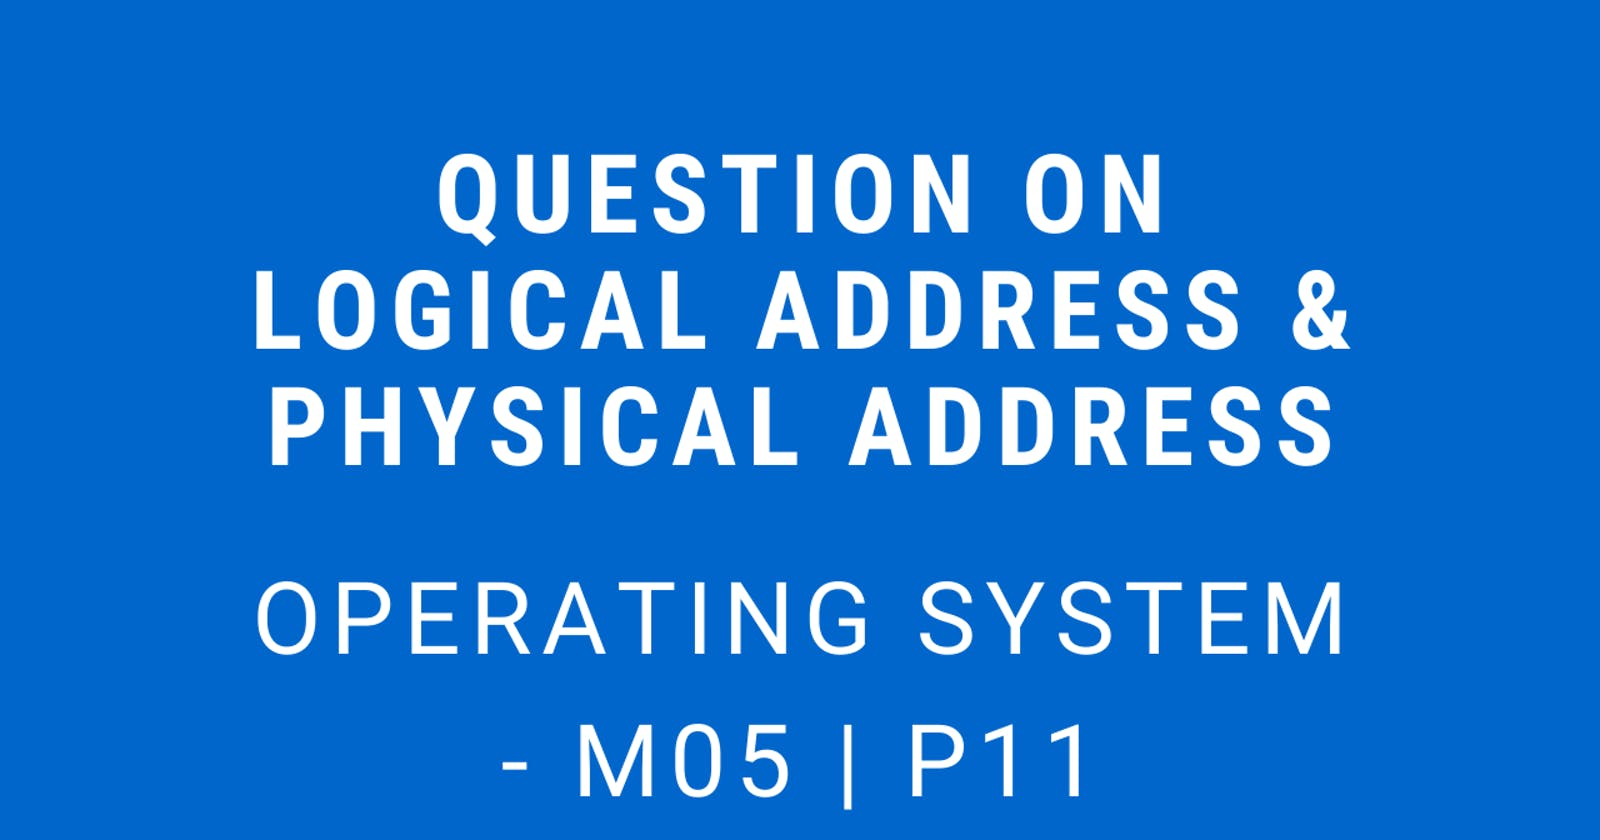 Question on Logical Address & Physical Address   Operating System - M05 P11